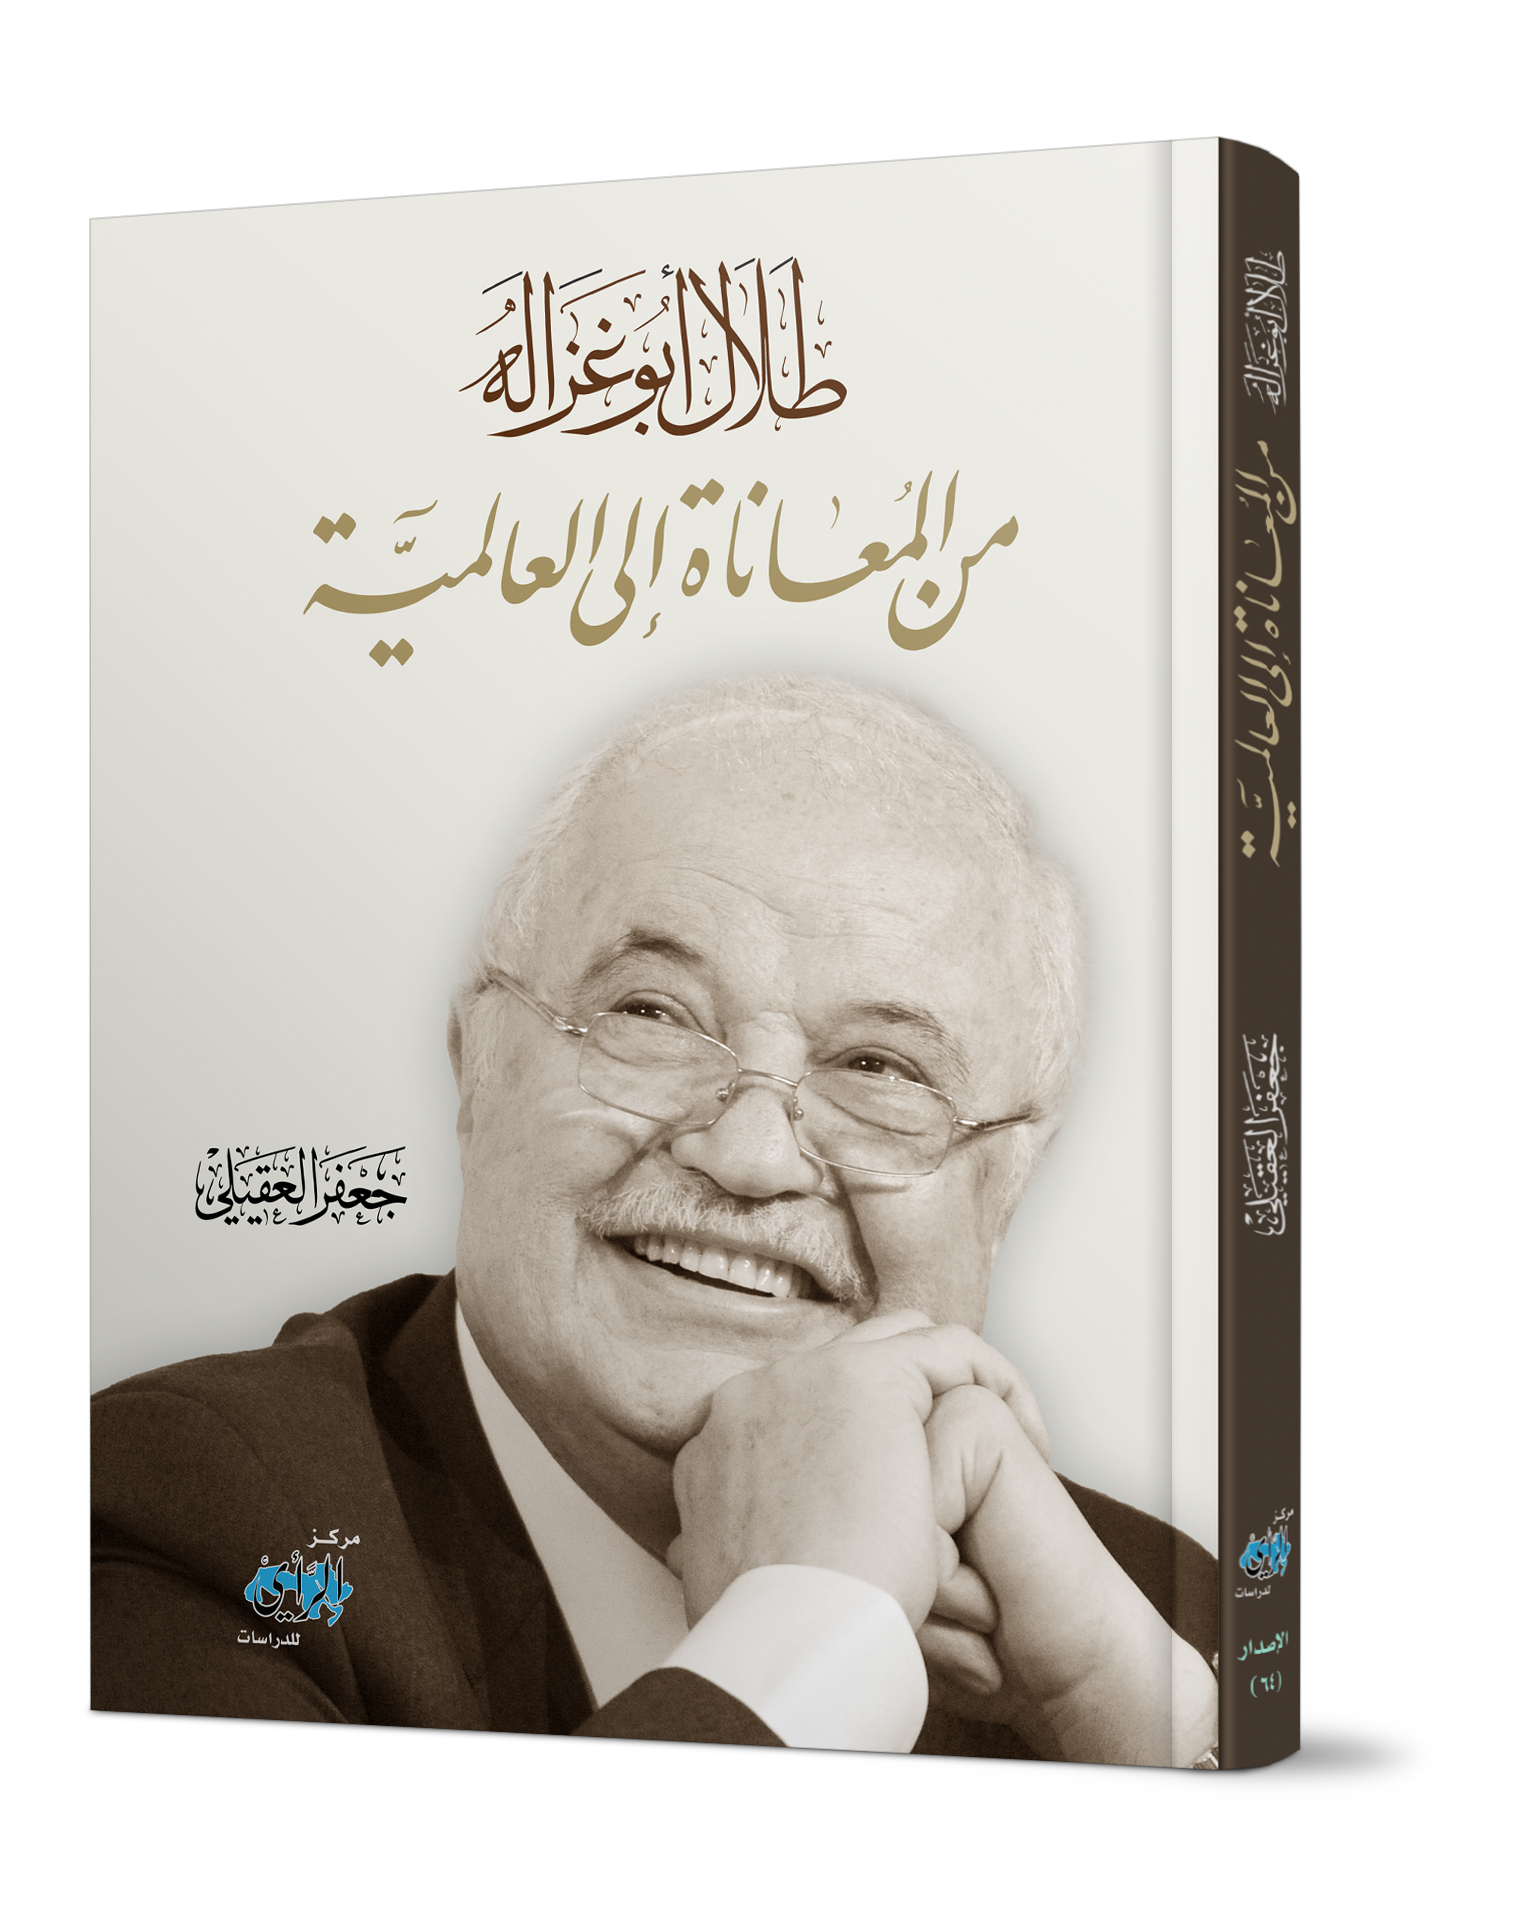 Storytel Issues 'Talal Abu-Ghazaleh...From Suffering to Universality' Audiobook